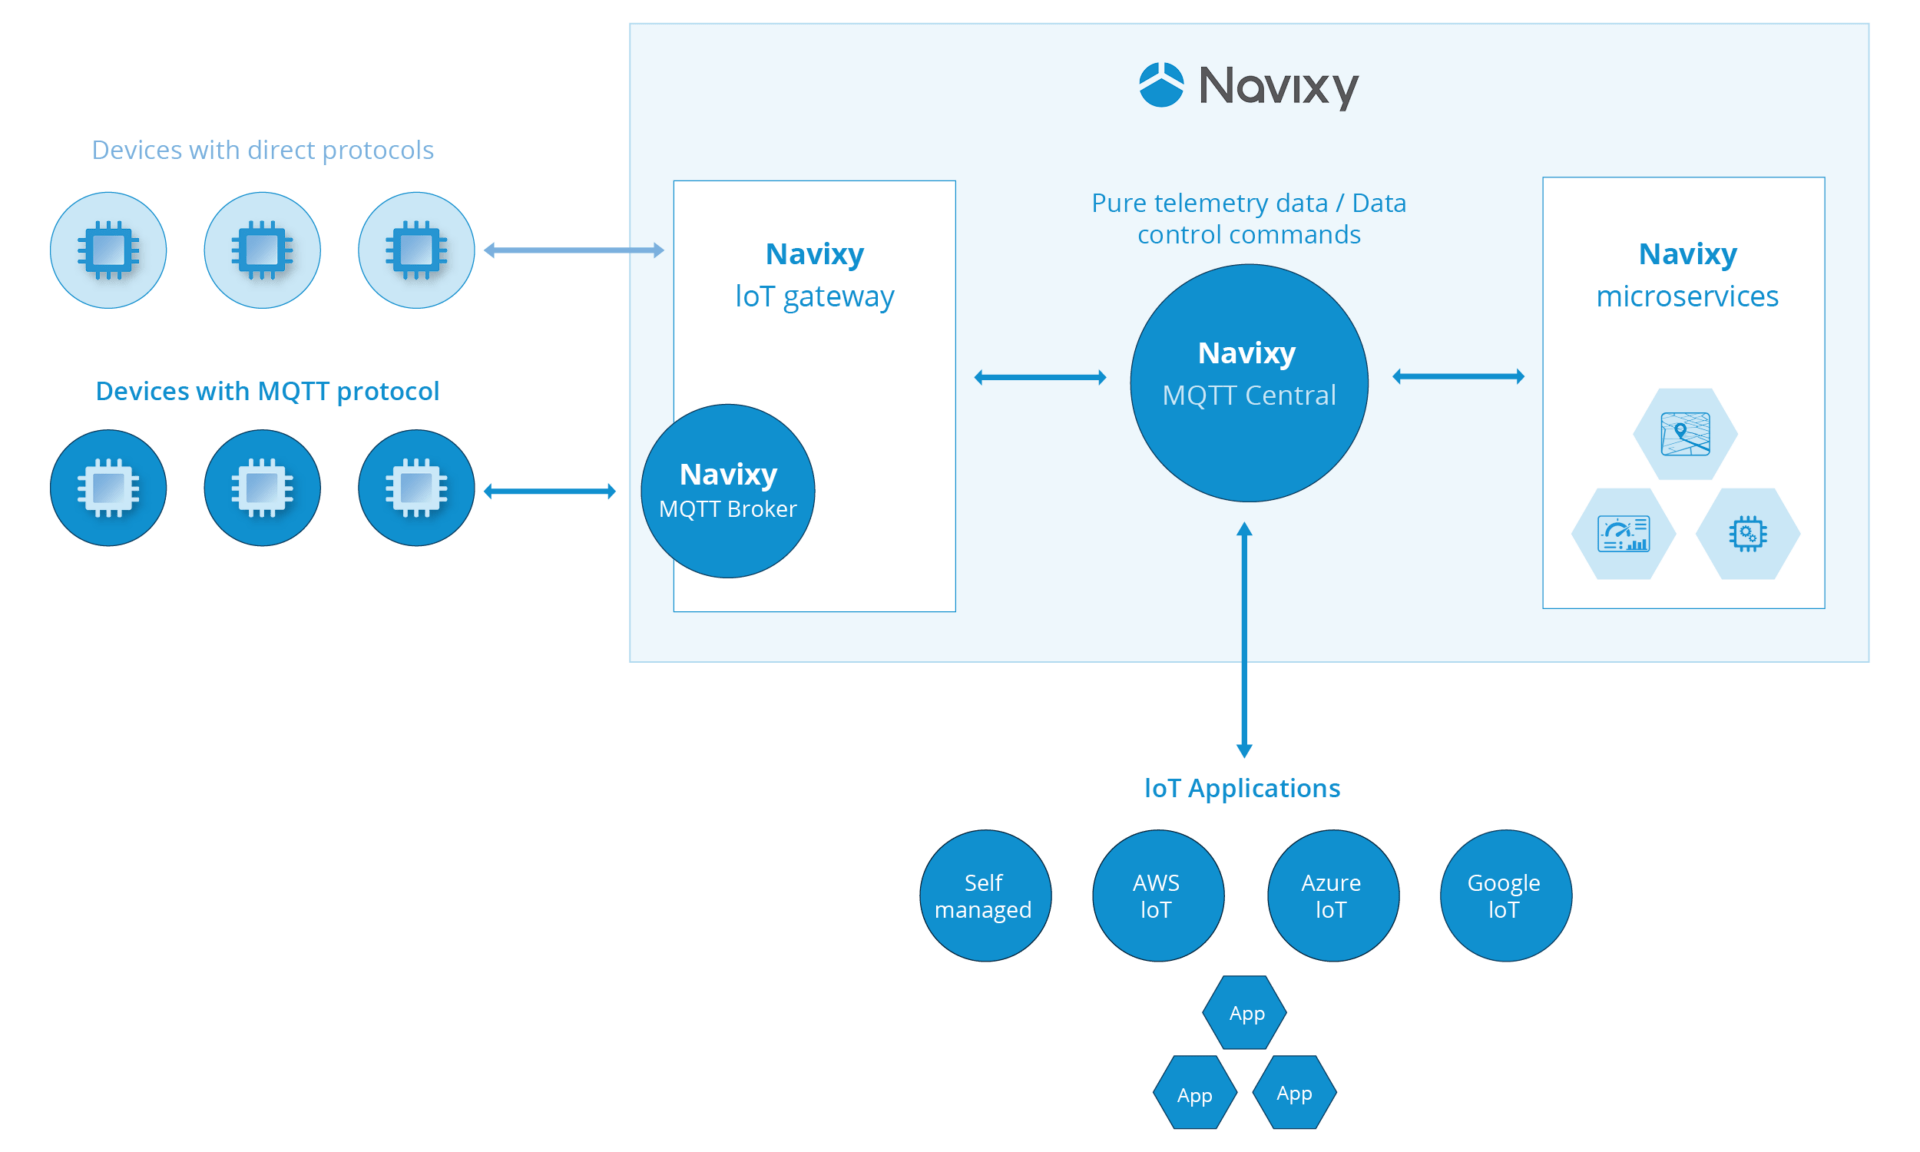 Navixy MQTT Central network with IoT gateway and microservices